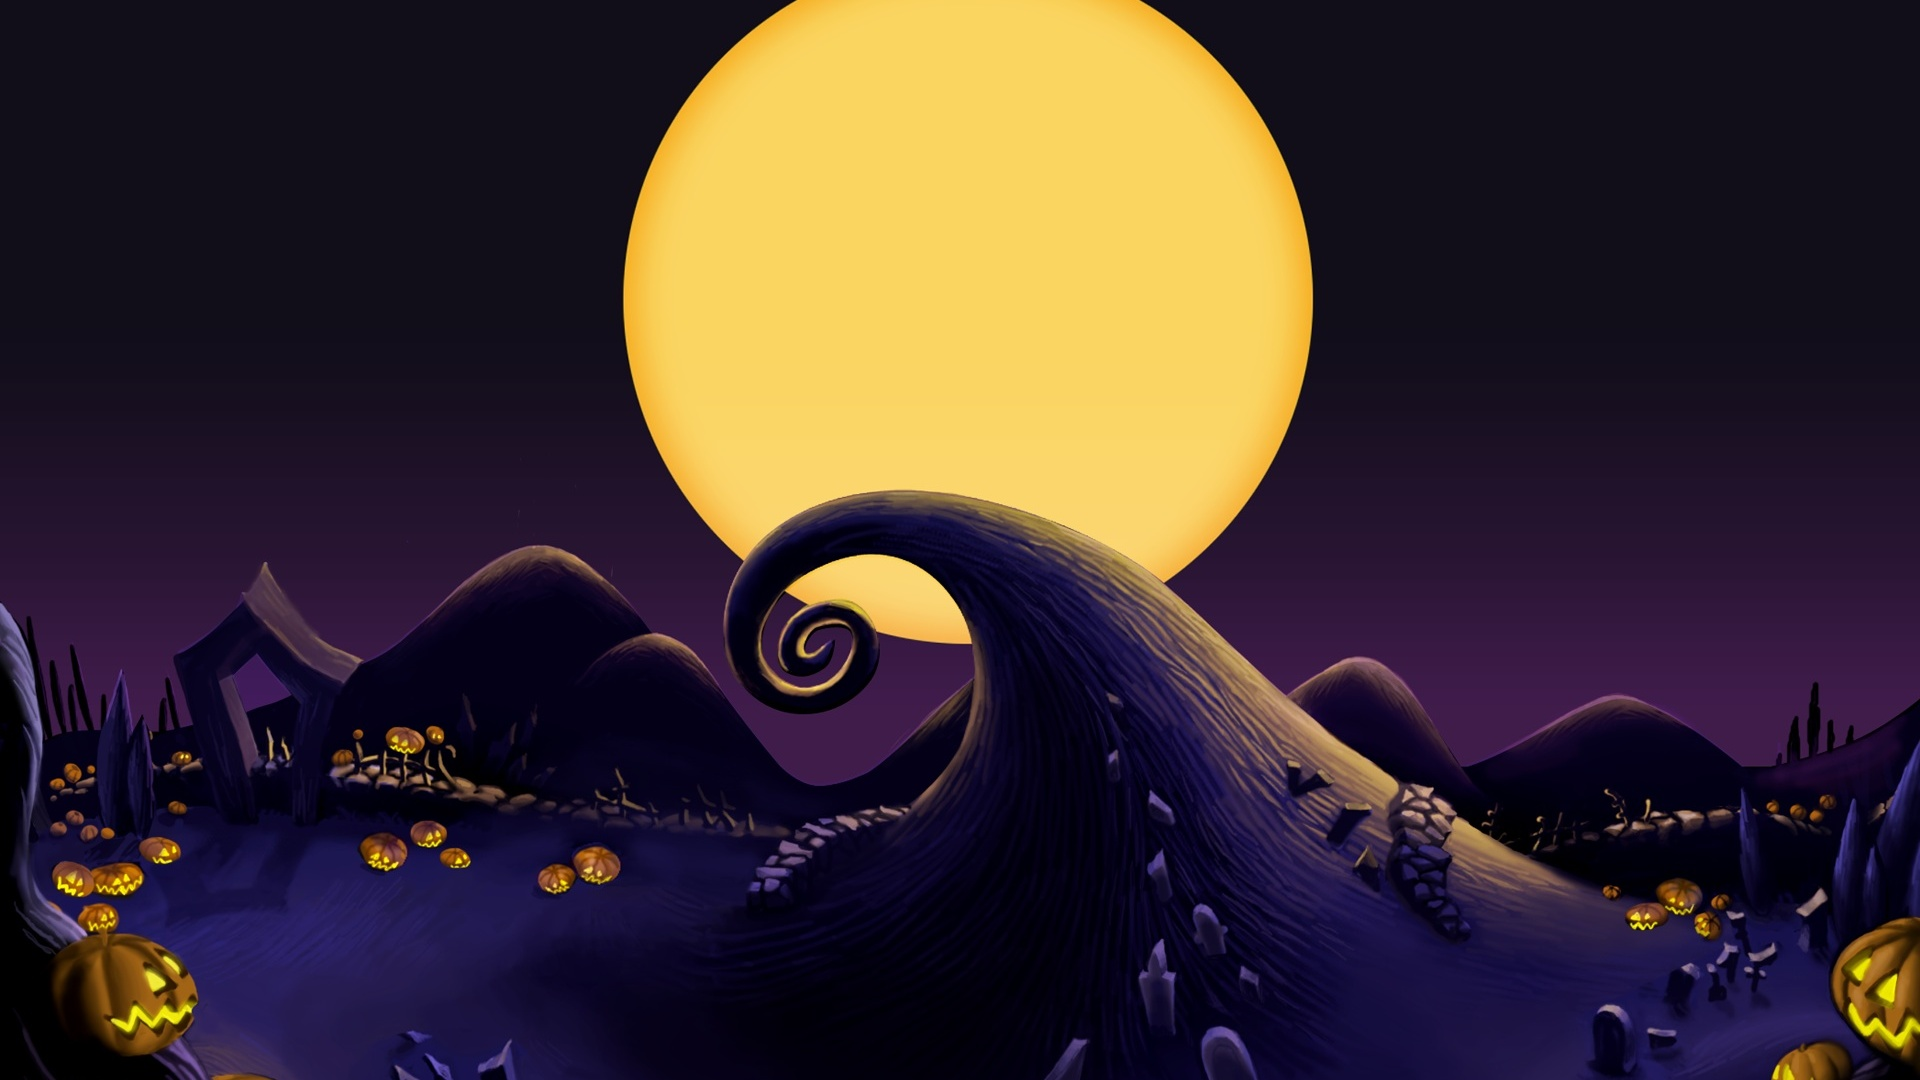 Nightmare Before Christmas Wallpaper pictures